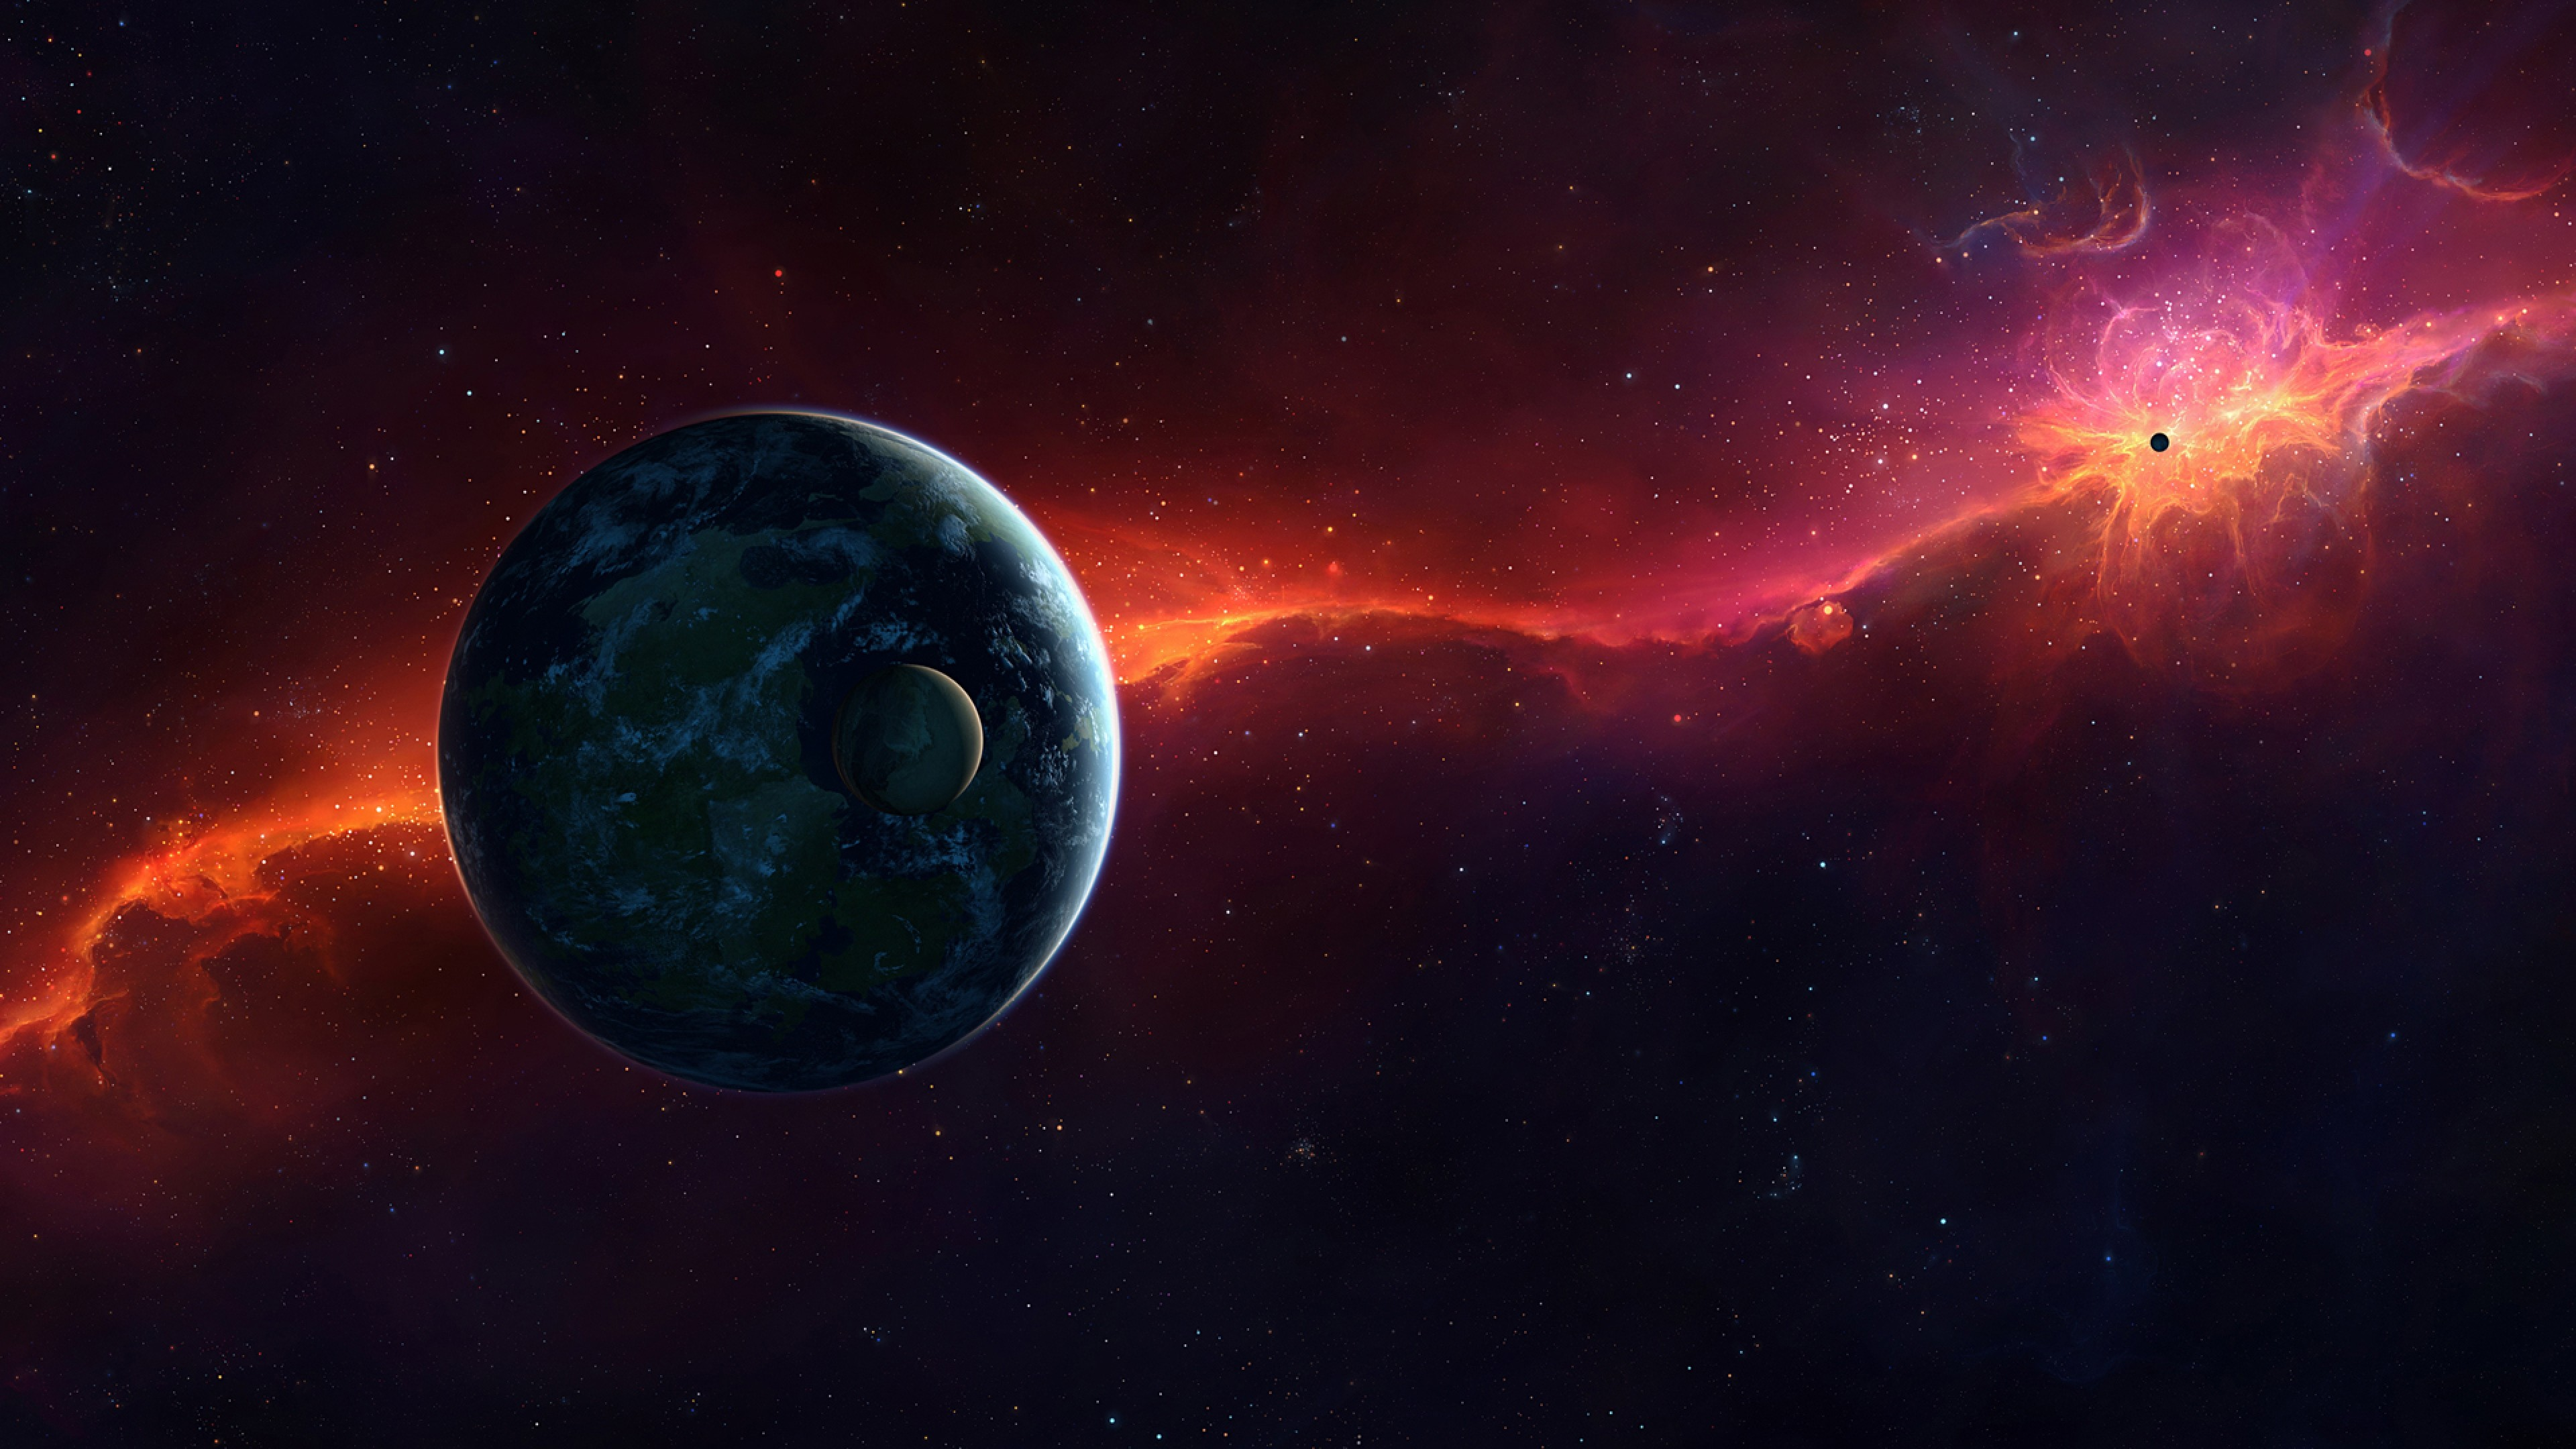 … Background 4K Ultra HD. Wallpaper sci fi, space, red, planet